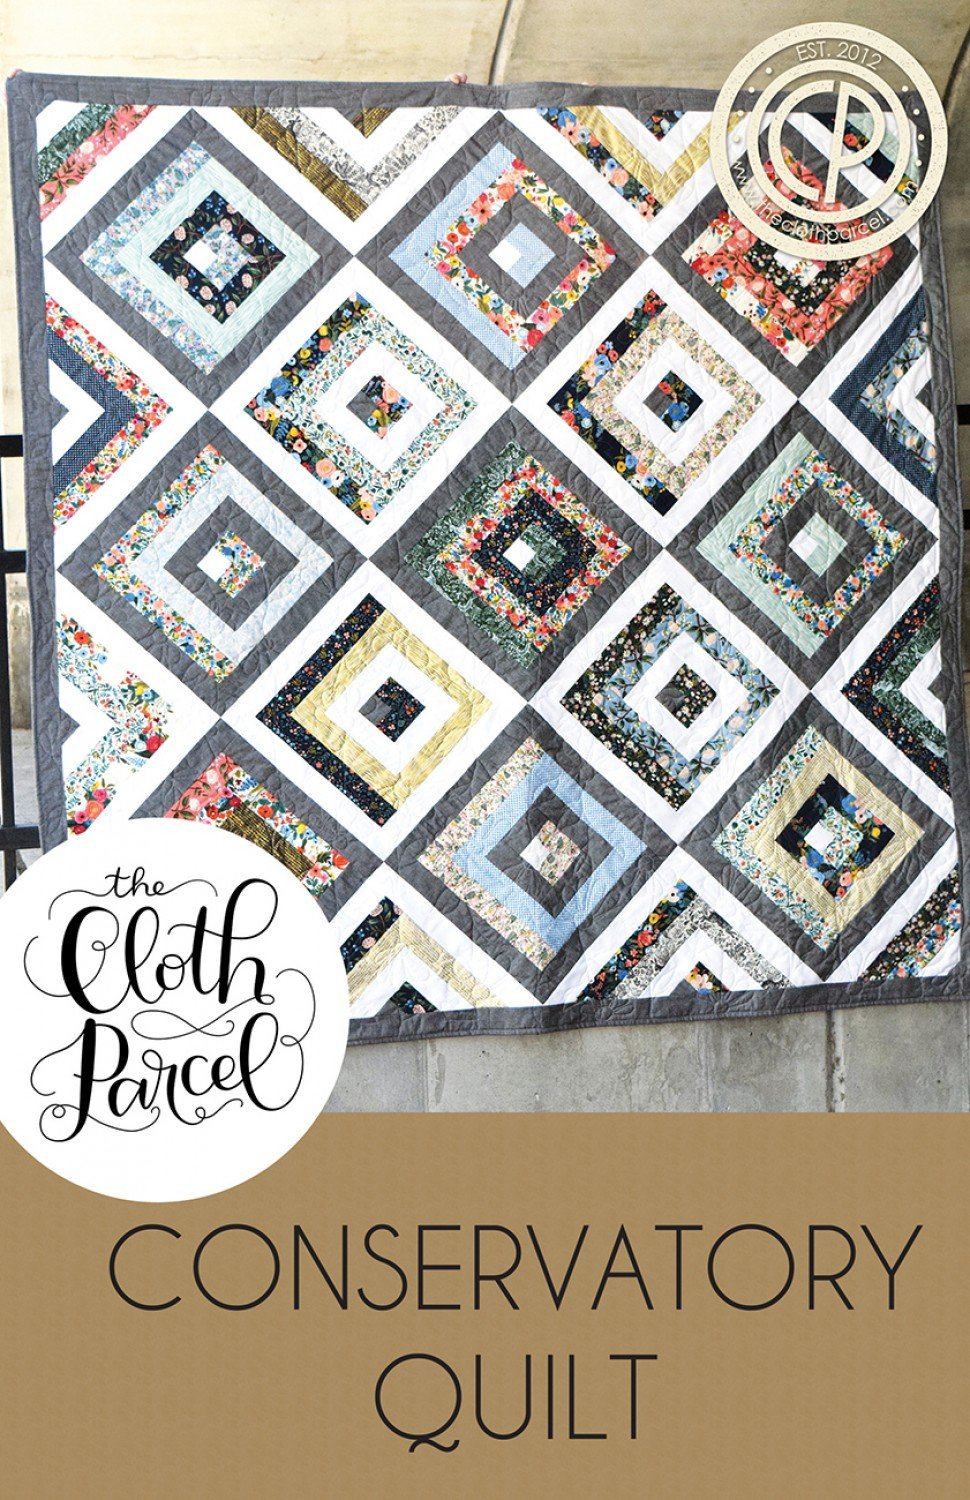 Conservatory Quilt by Cloth Parcel